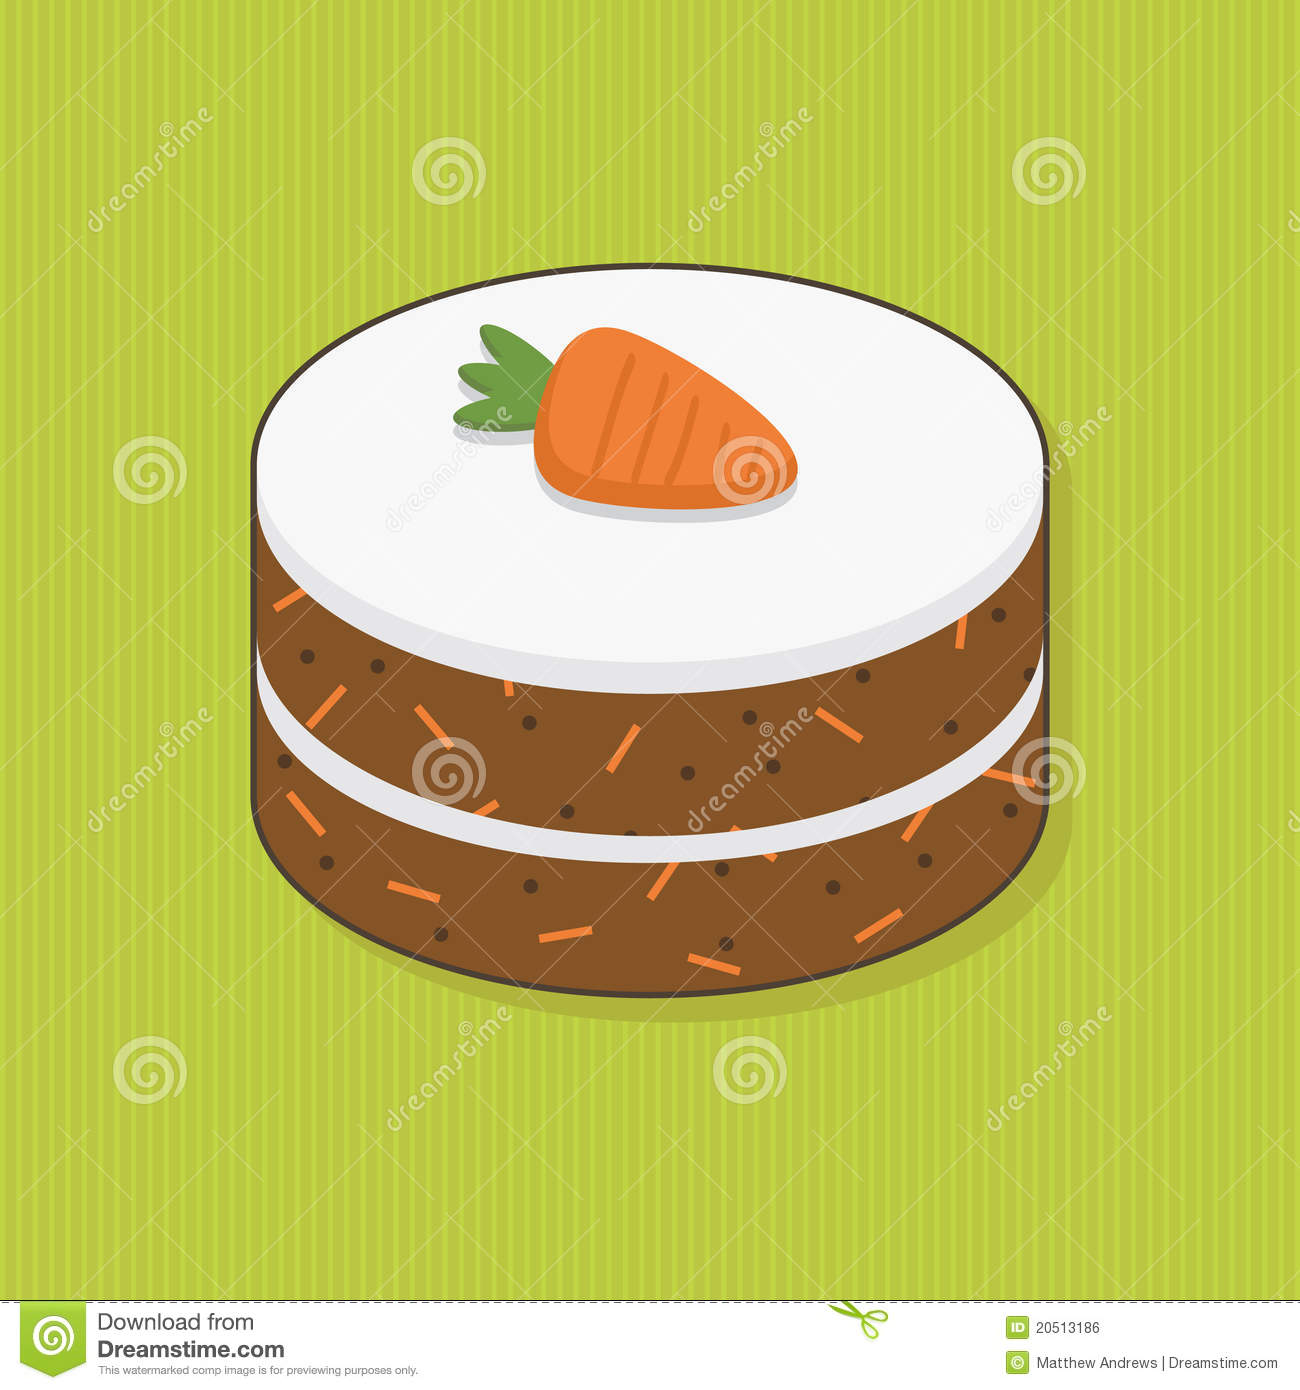 Carrot Cake Royalty Free Stock Image - Image: 20513186